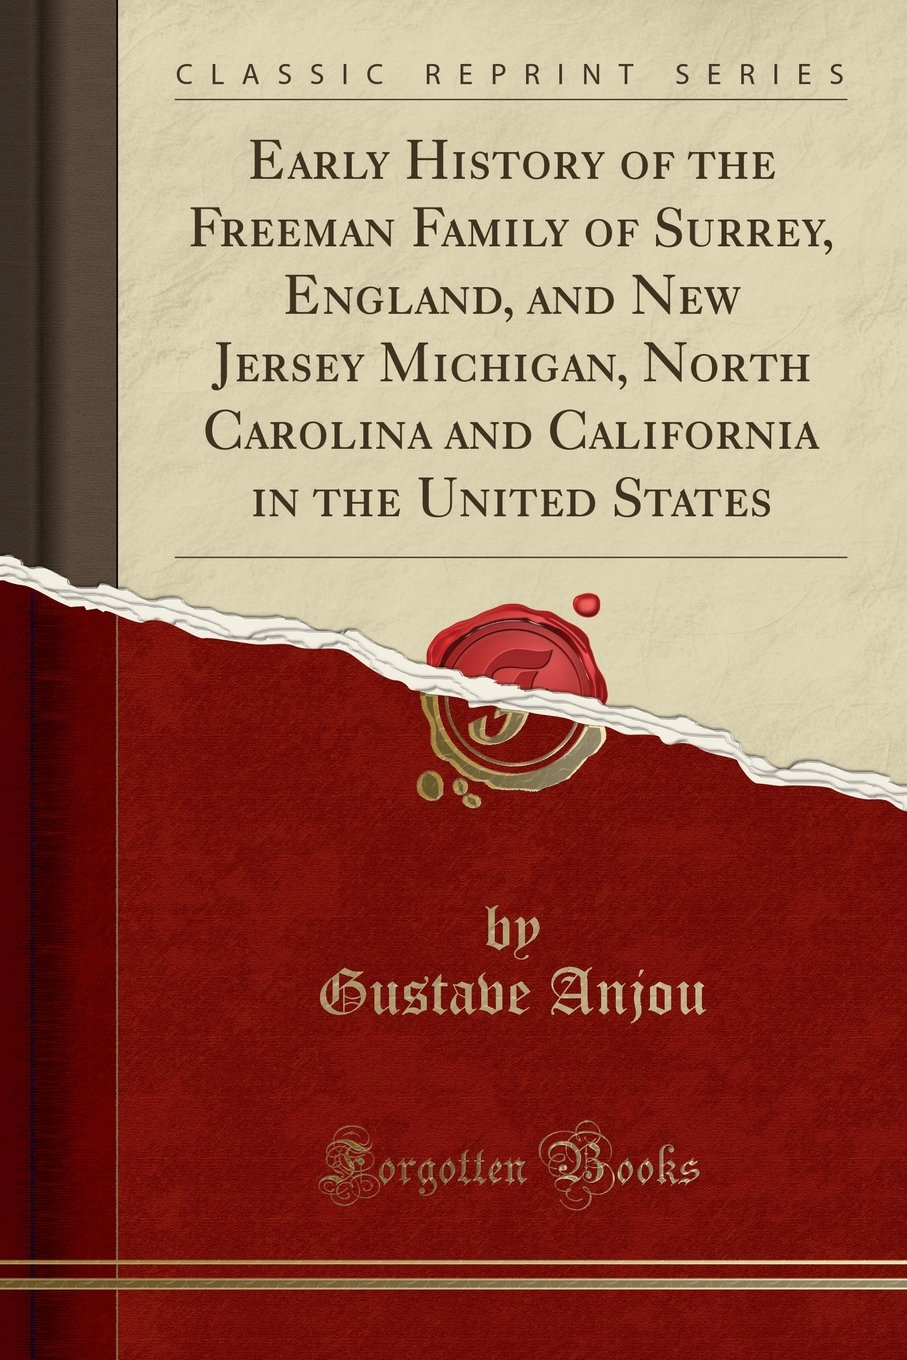 Early History of the Freeman Family of Surrey, England, and New Jersey Michigan, North Carolina and California in the United States (Classic Reprint) pdf epub